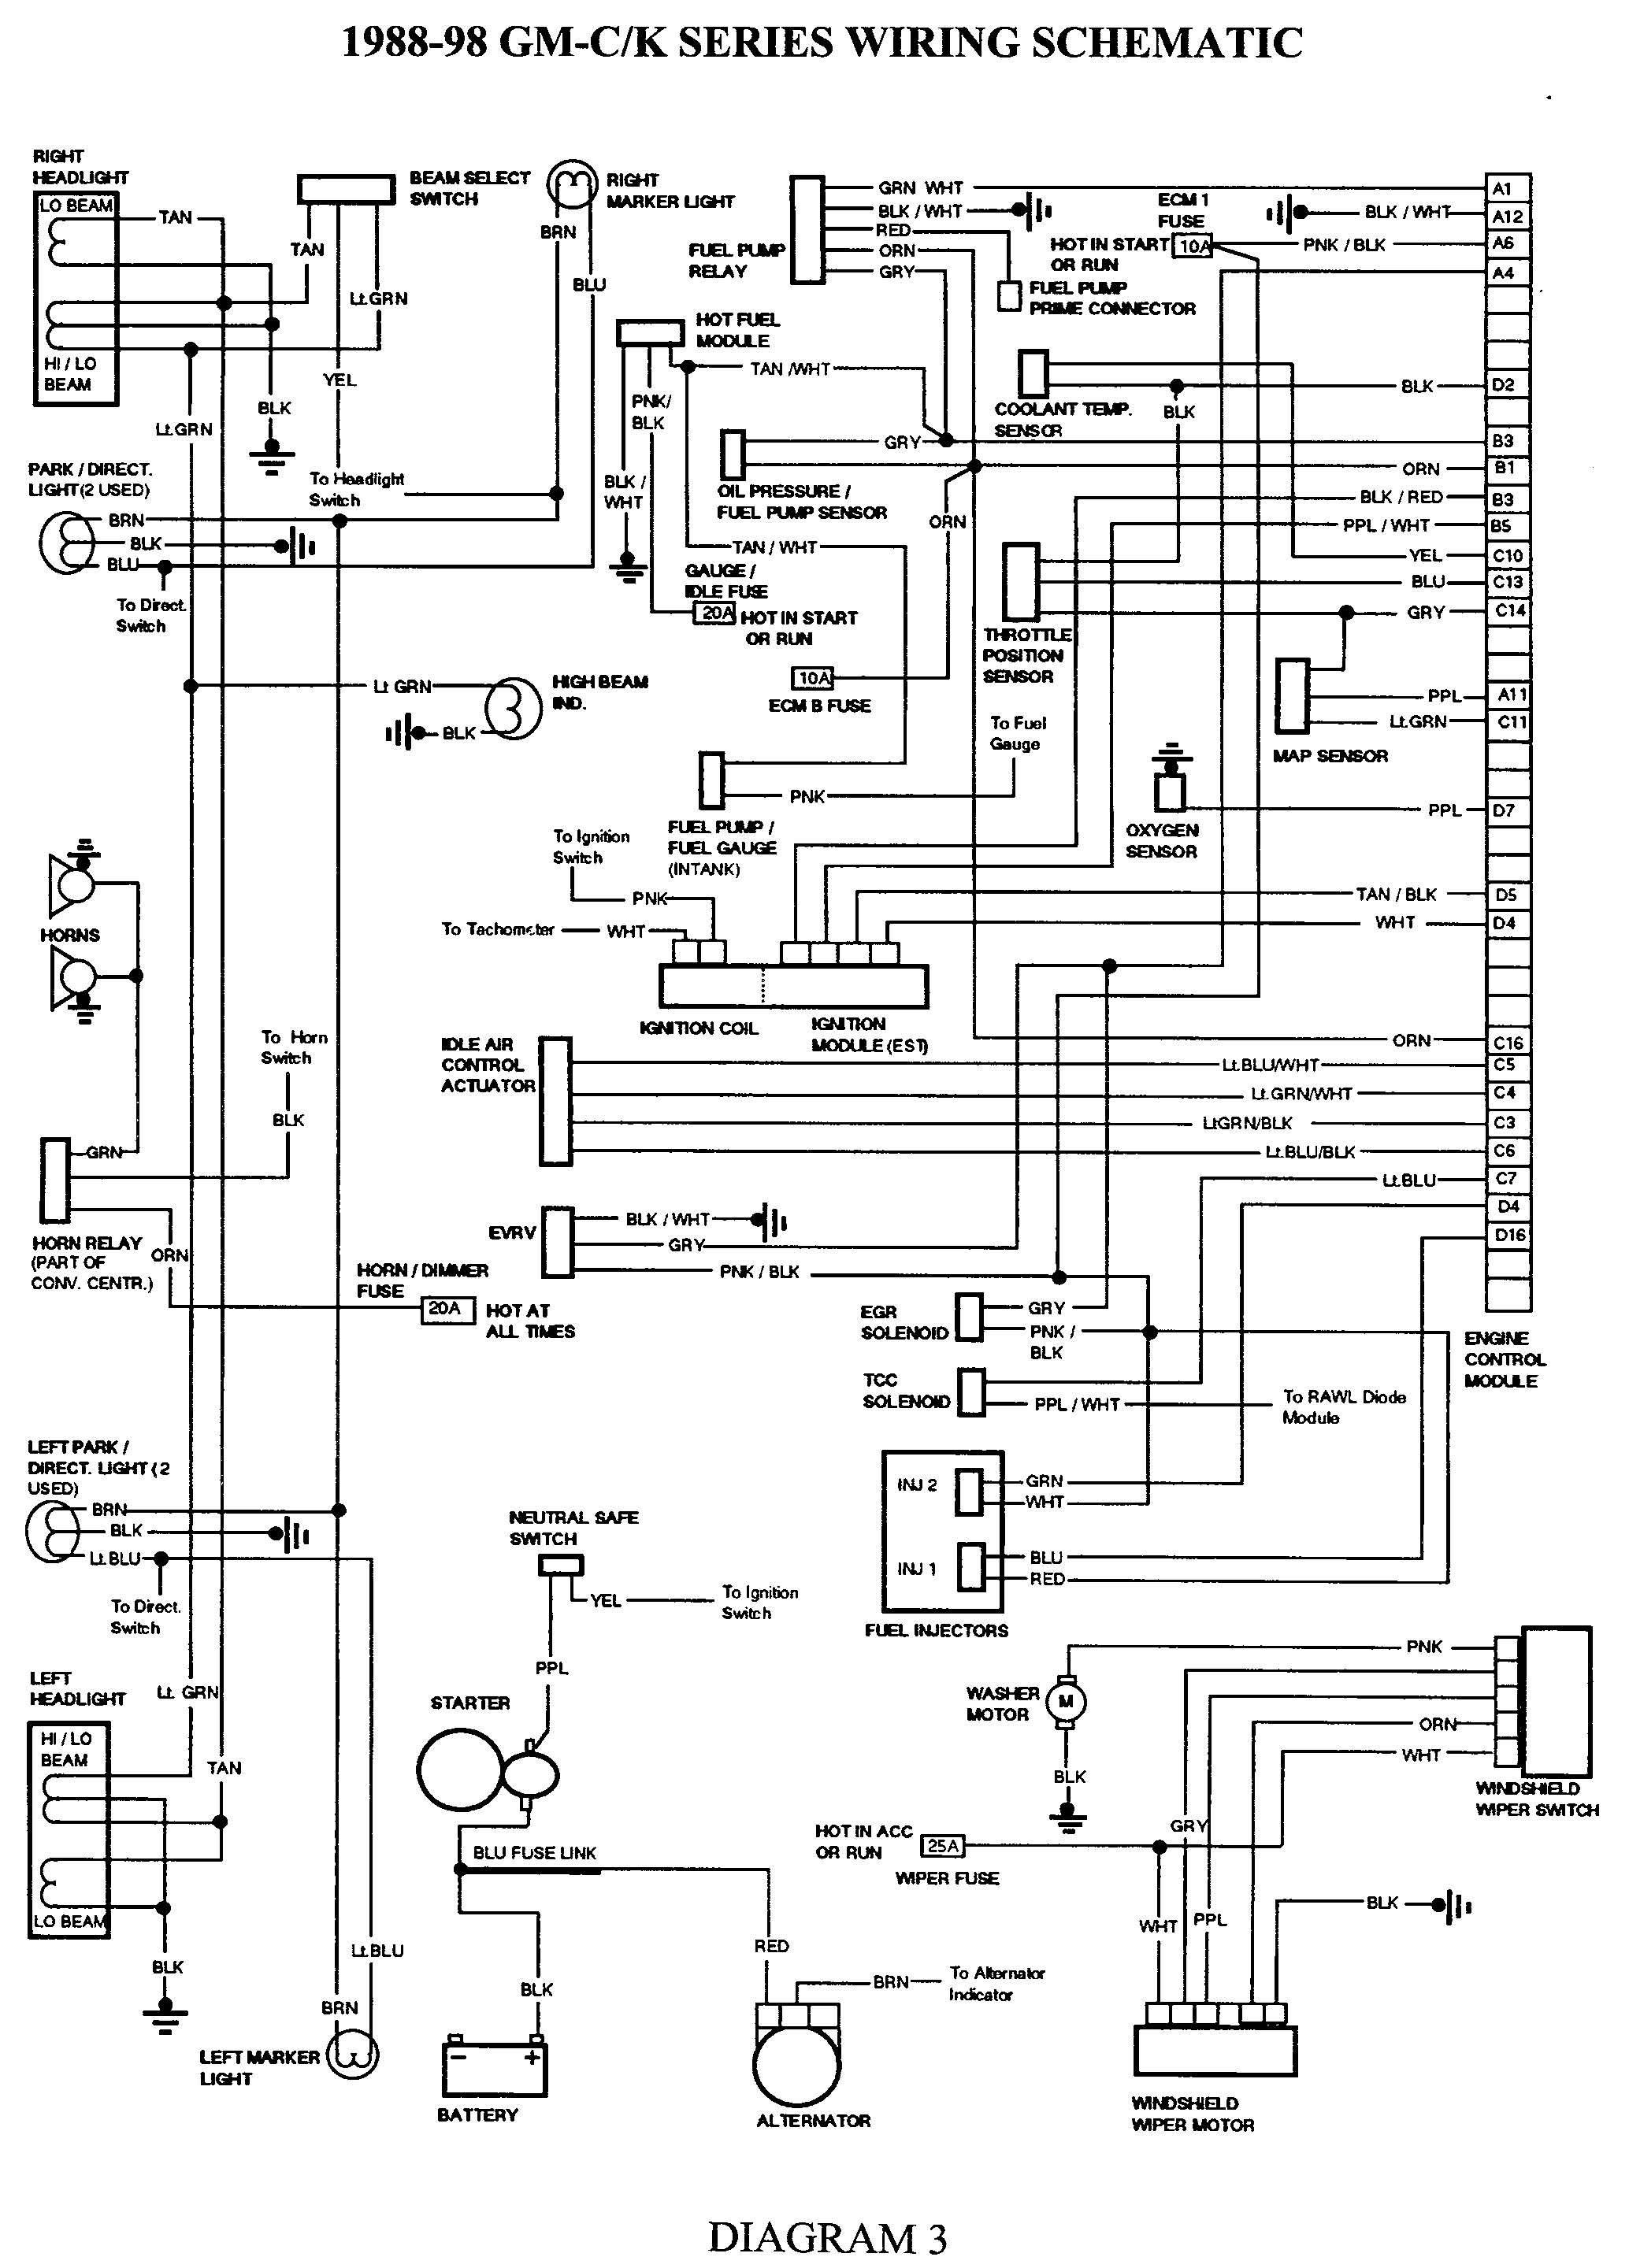 Boy Buggy Wiring Diagram ther With 1978 Honda Xl 125 ... on switch diagrams, internet of things diagrams, transformer diagrams, honda motorcycle repair diagrams, motor diagrams, smart car diagrams, battery diagrams, friendship bracelet diagrams, gmc fuse box diagrams, lighting diagrams, engine diagrams, electrical diagrams, troubleshooting diagrams, electronic circuit diagrams, pinout diagrams, led circuit diagrams, hvac diagrams, series and parallel circuits diagrams, sincgars radio configurations diagrams,